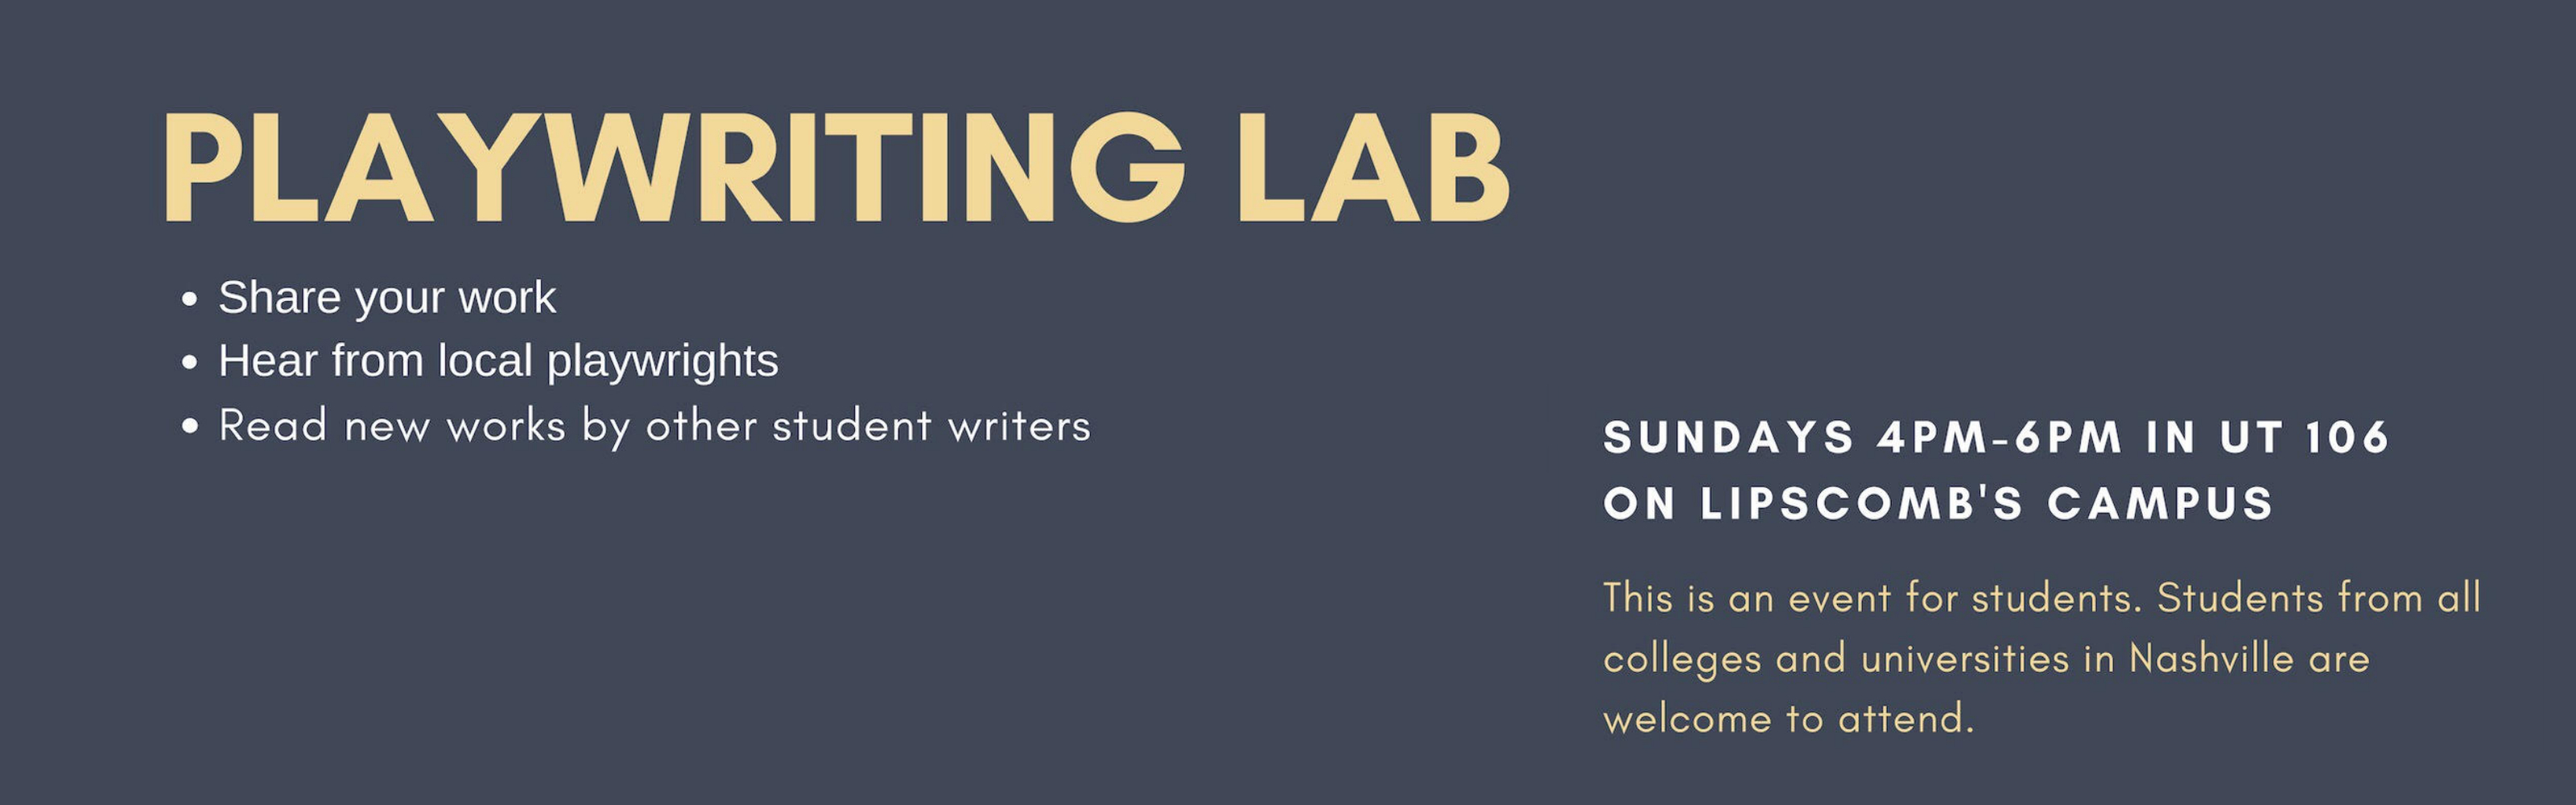 Playwriting Lab